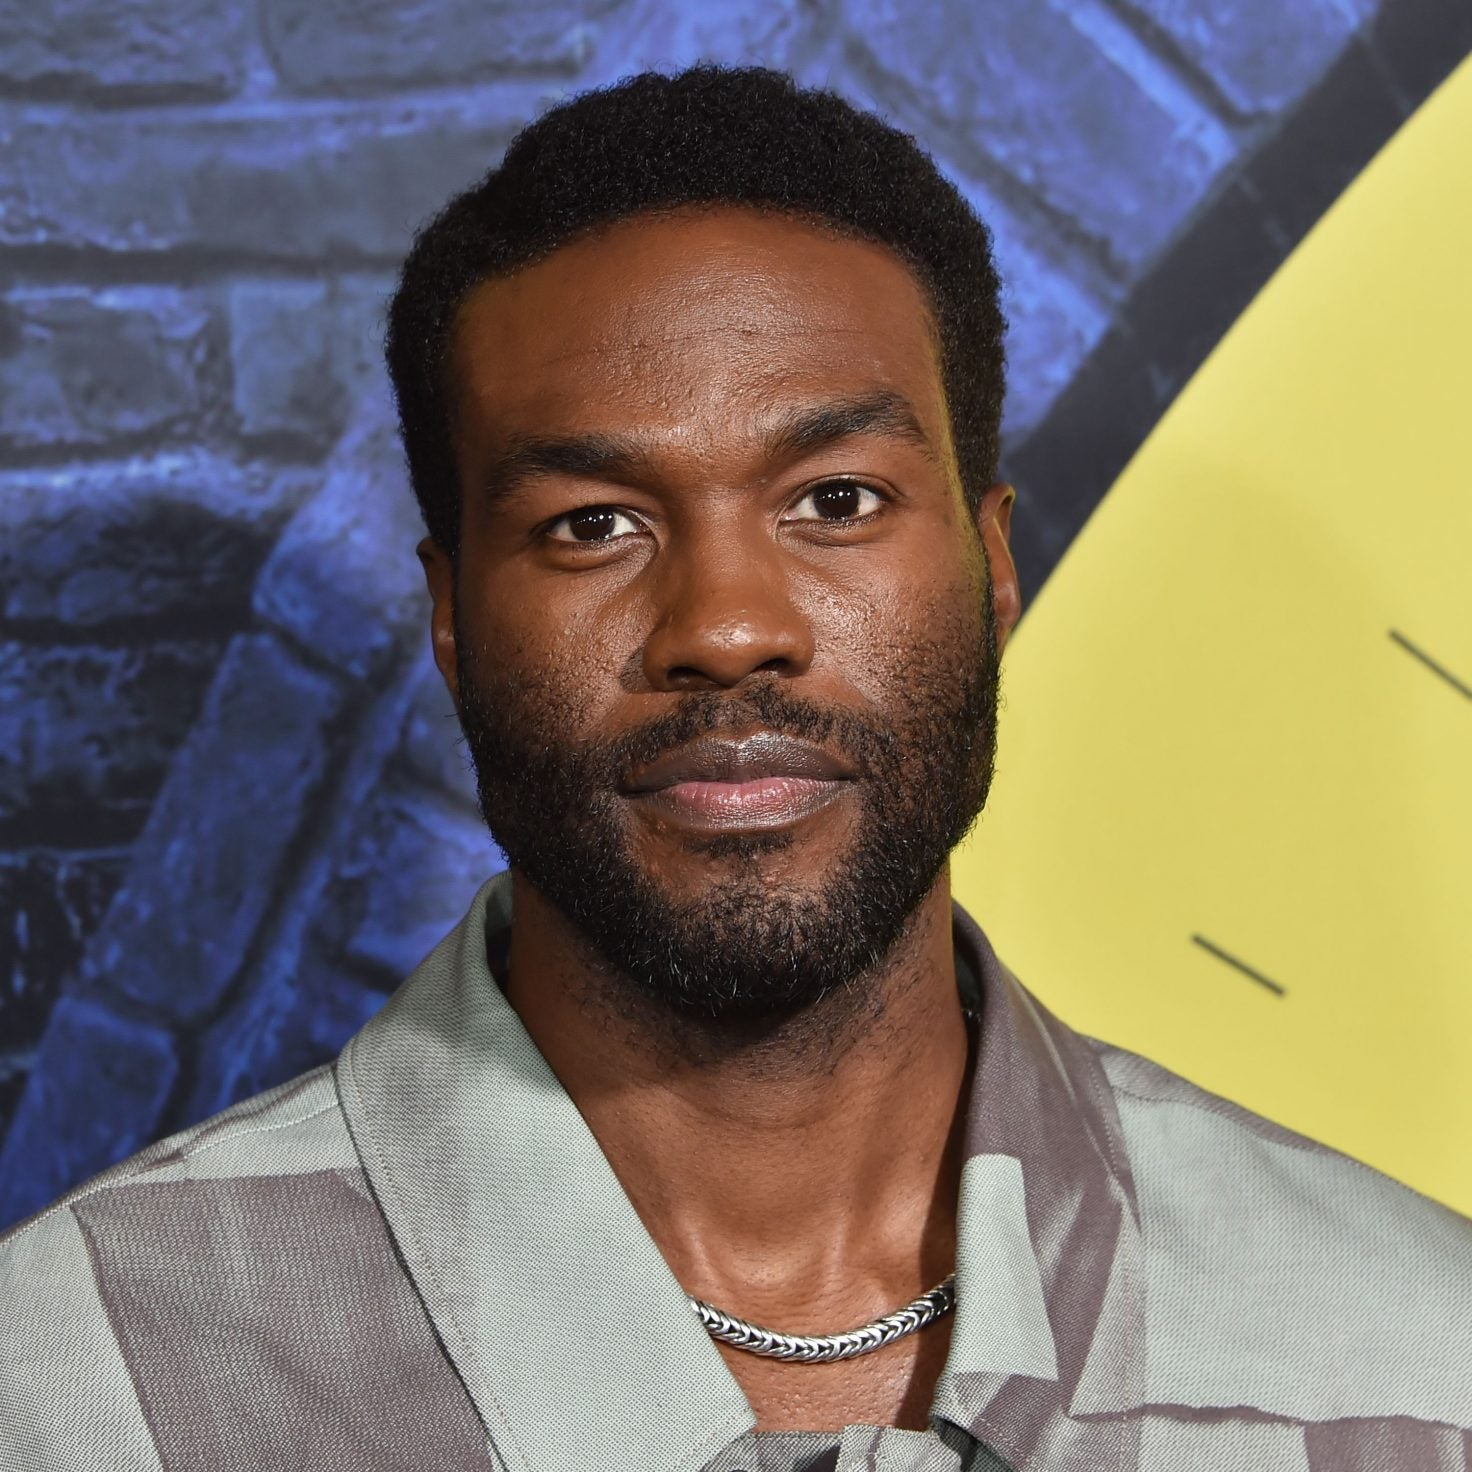 12 Facts You Didn't Know About Sexy 'Watchmen' Star Yahya Abdul-Mateen II